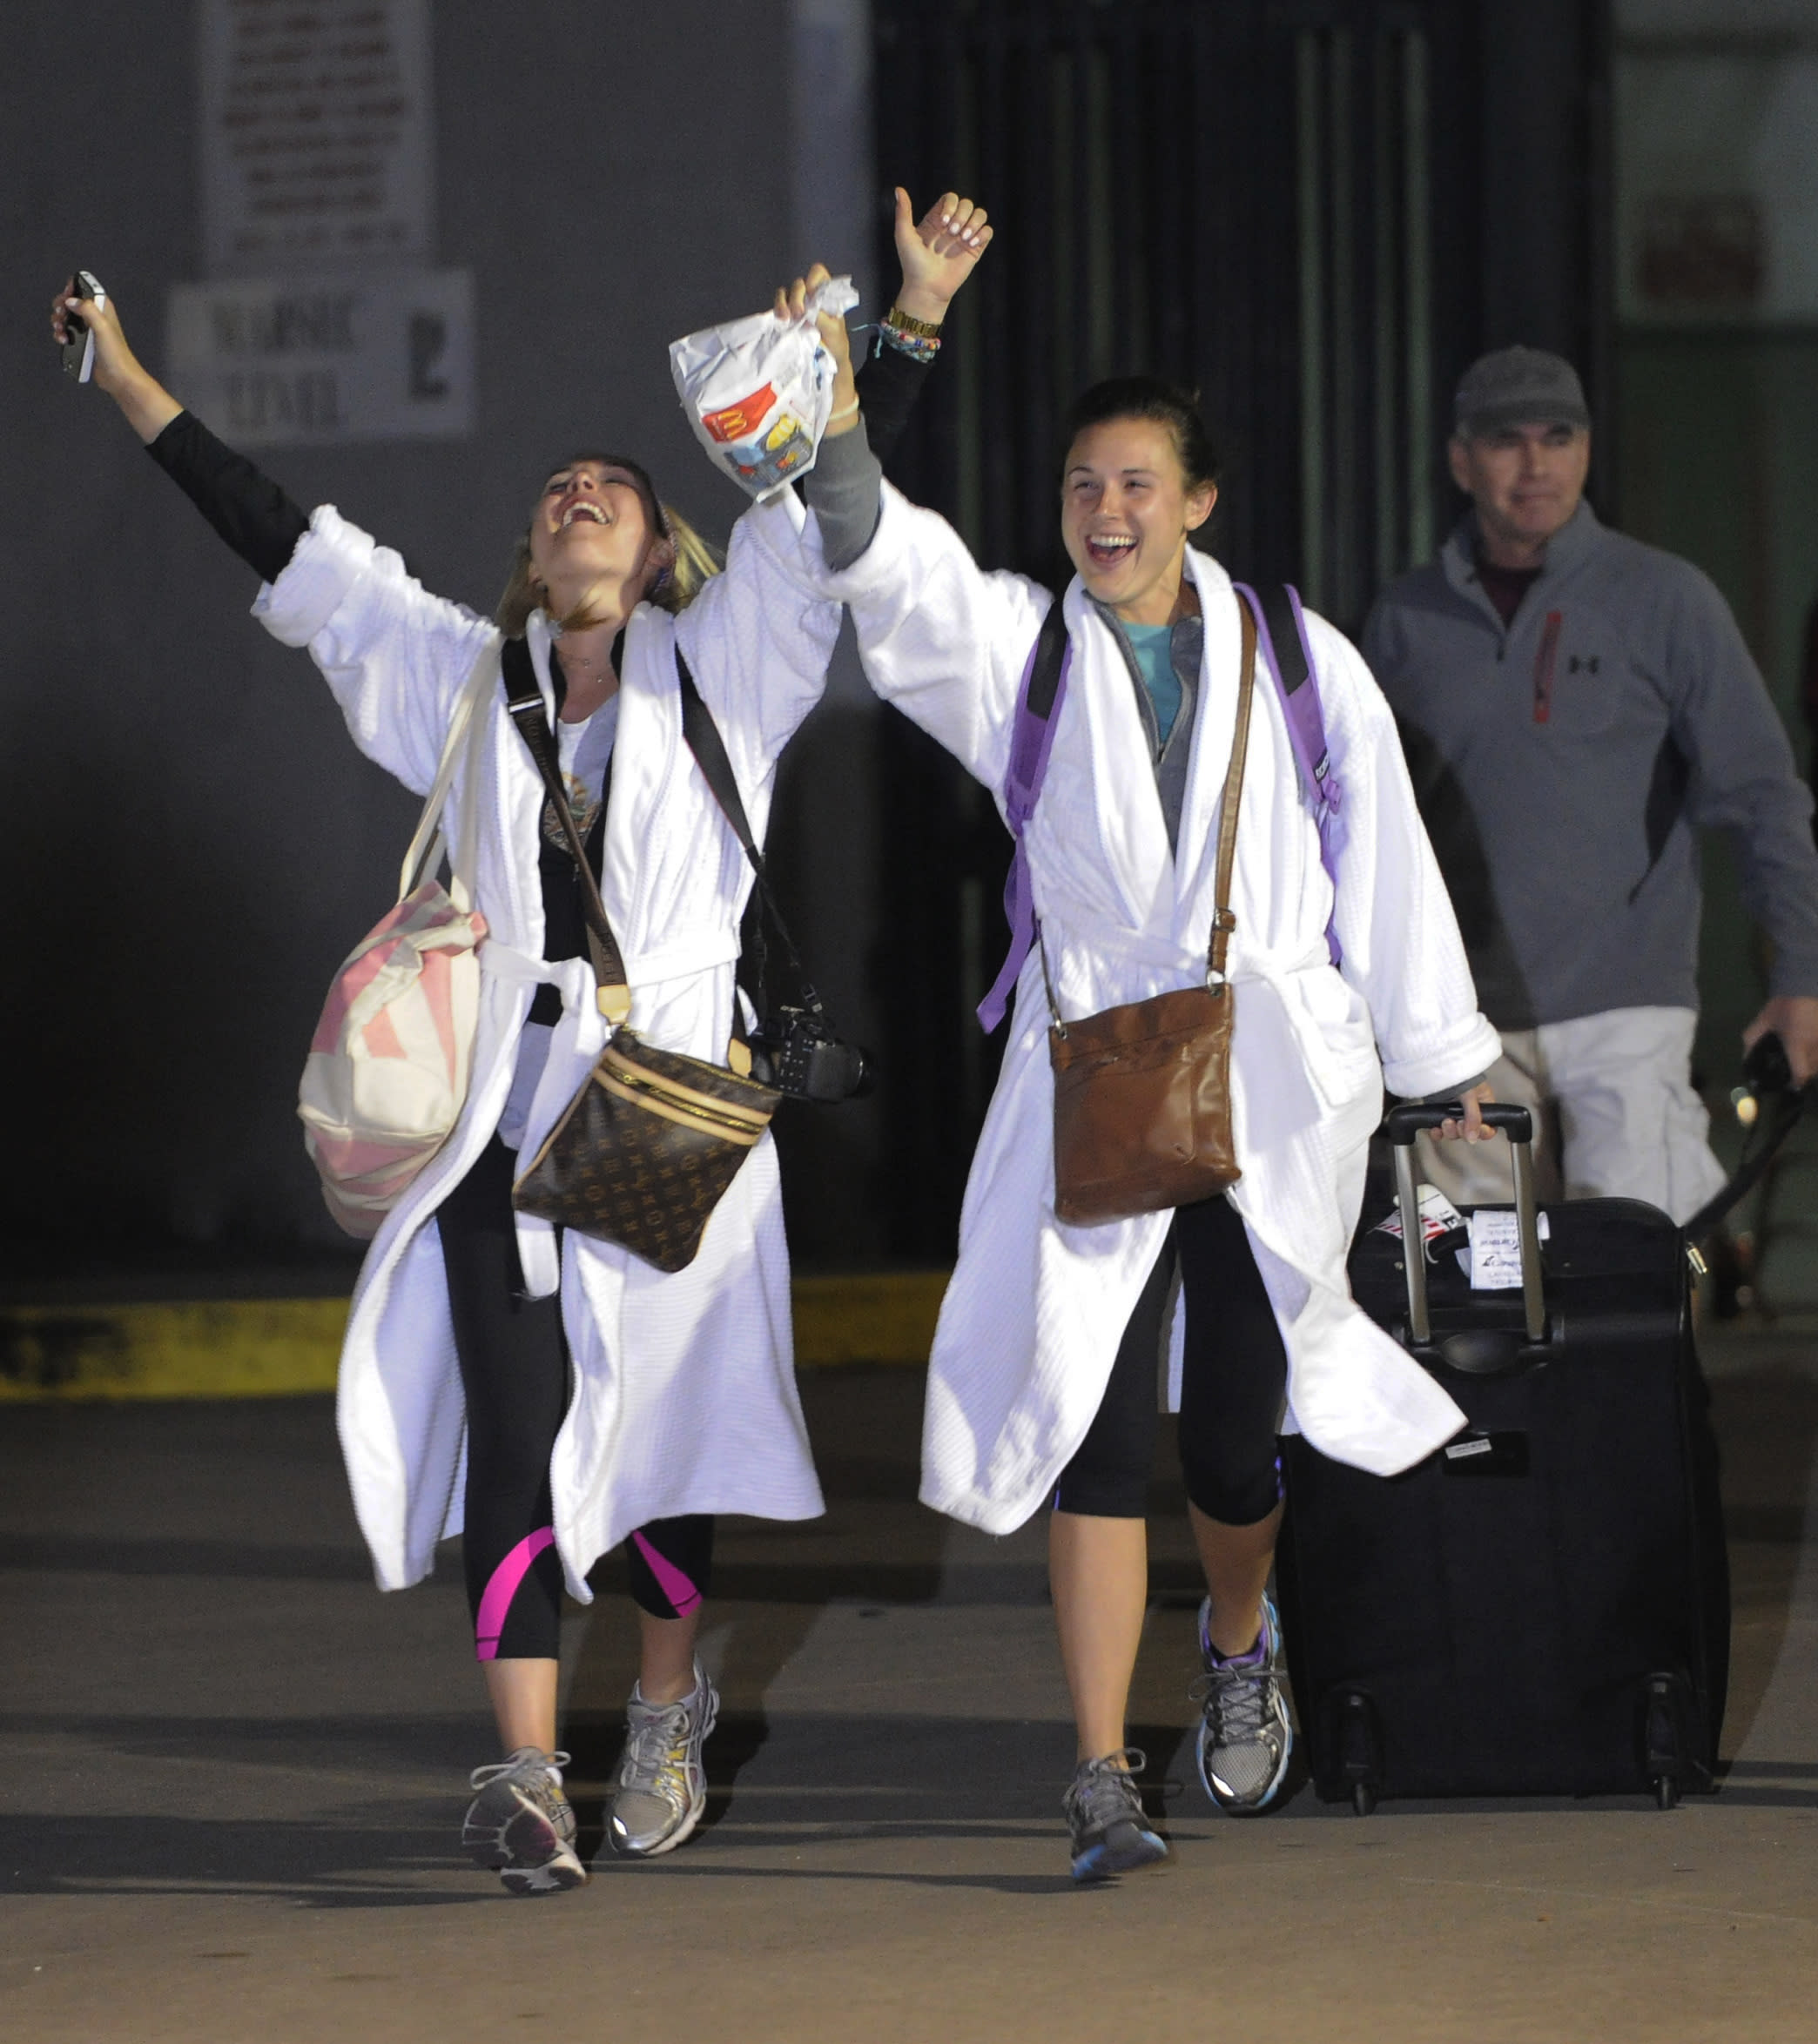 Kendall Jenkins, left, of Houston, celebrates with Brittany Ferguson, of Houston, after getting off the Carnival Triumph in Mobile, Ala., Thursday, Feb. 14, 2013. The ship with more than 4,200 passengers and crew members has been idled for nearly a week in the Gulf of Mexico following an engine room fire. (AP Photo/John David Mercer)